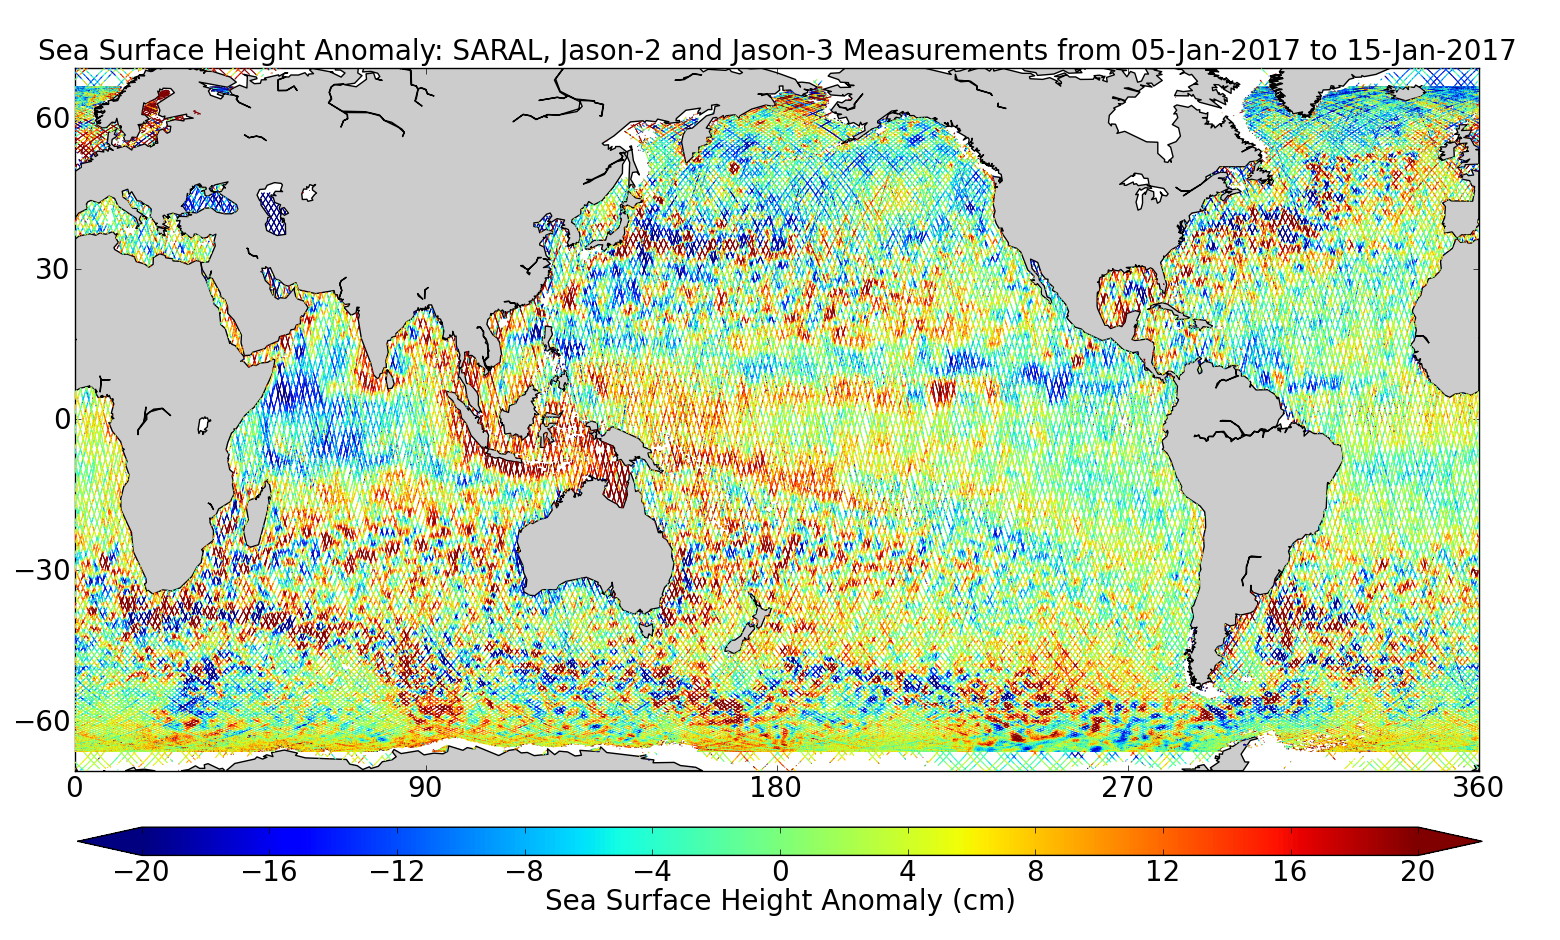 Sea Surface Height Anomaly: SARAL, Jason-2 and Jason-3 Measurements from 05-Jan-2017 to 15-Jan-2017